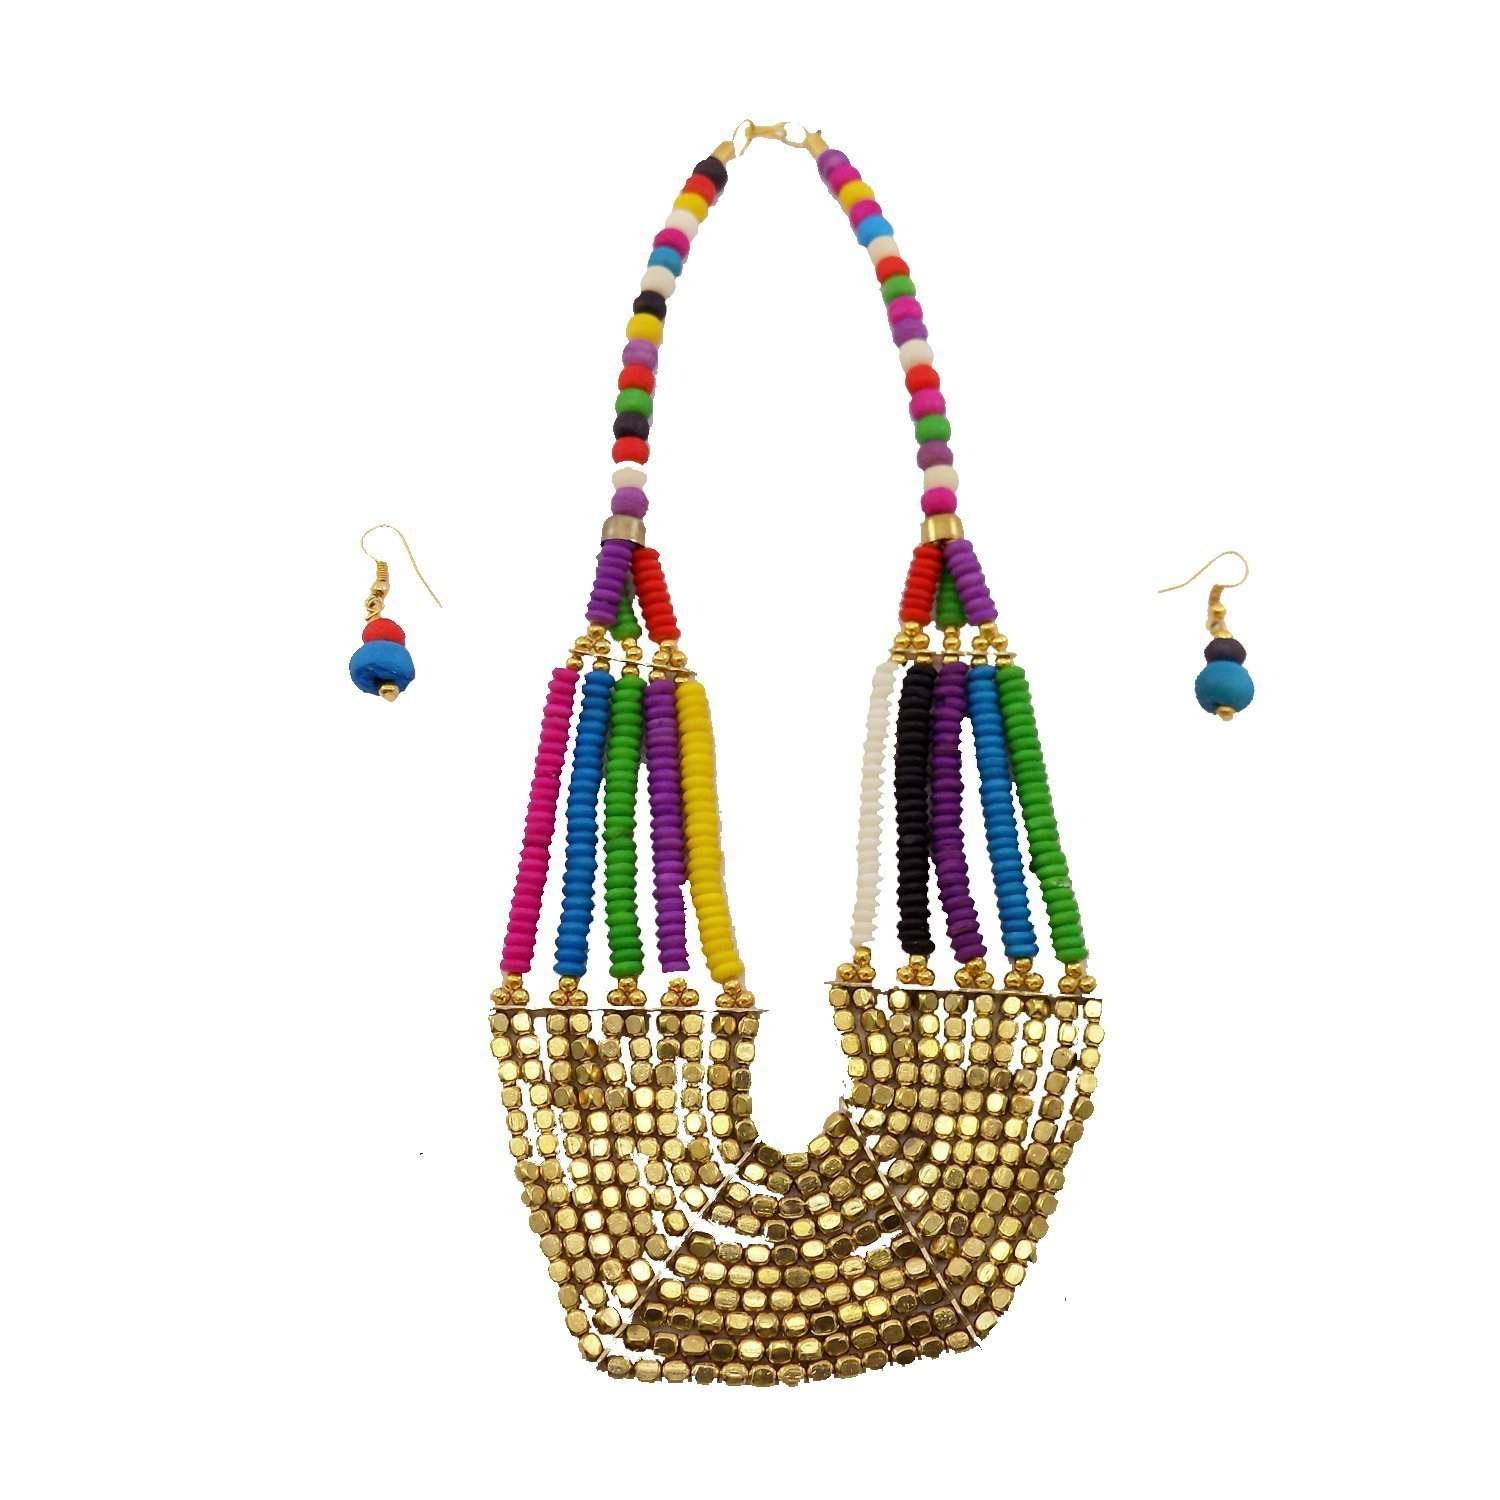 Multicolor Non-Precious Metal Beads Necklace with earrings For Women - Bagaholics Gift